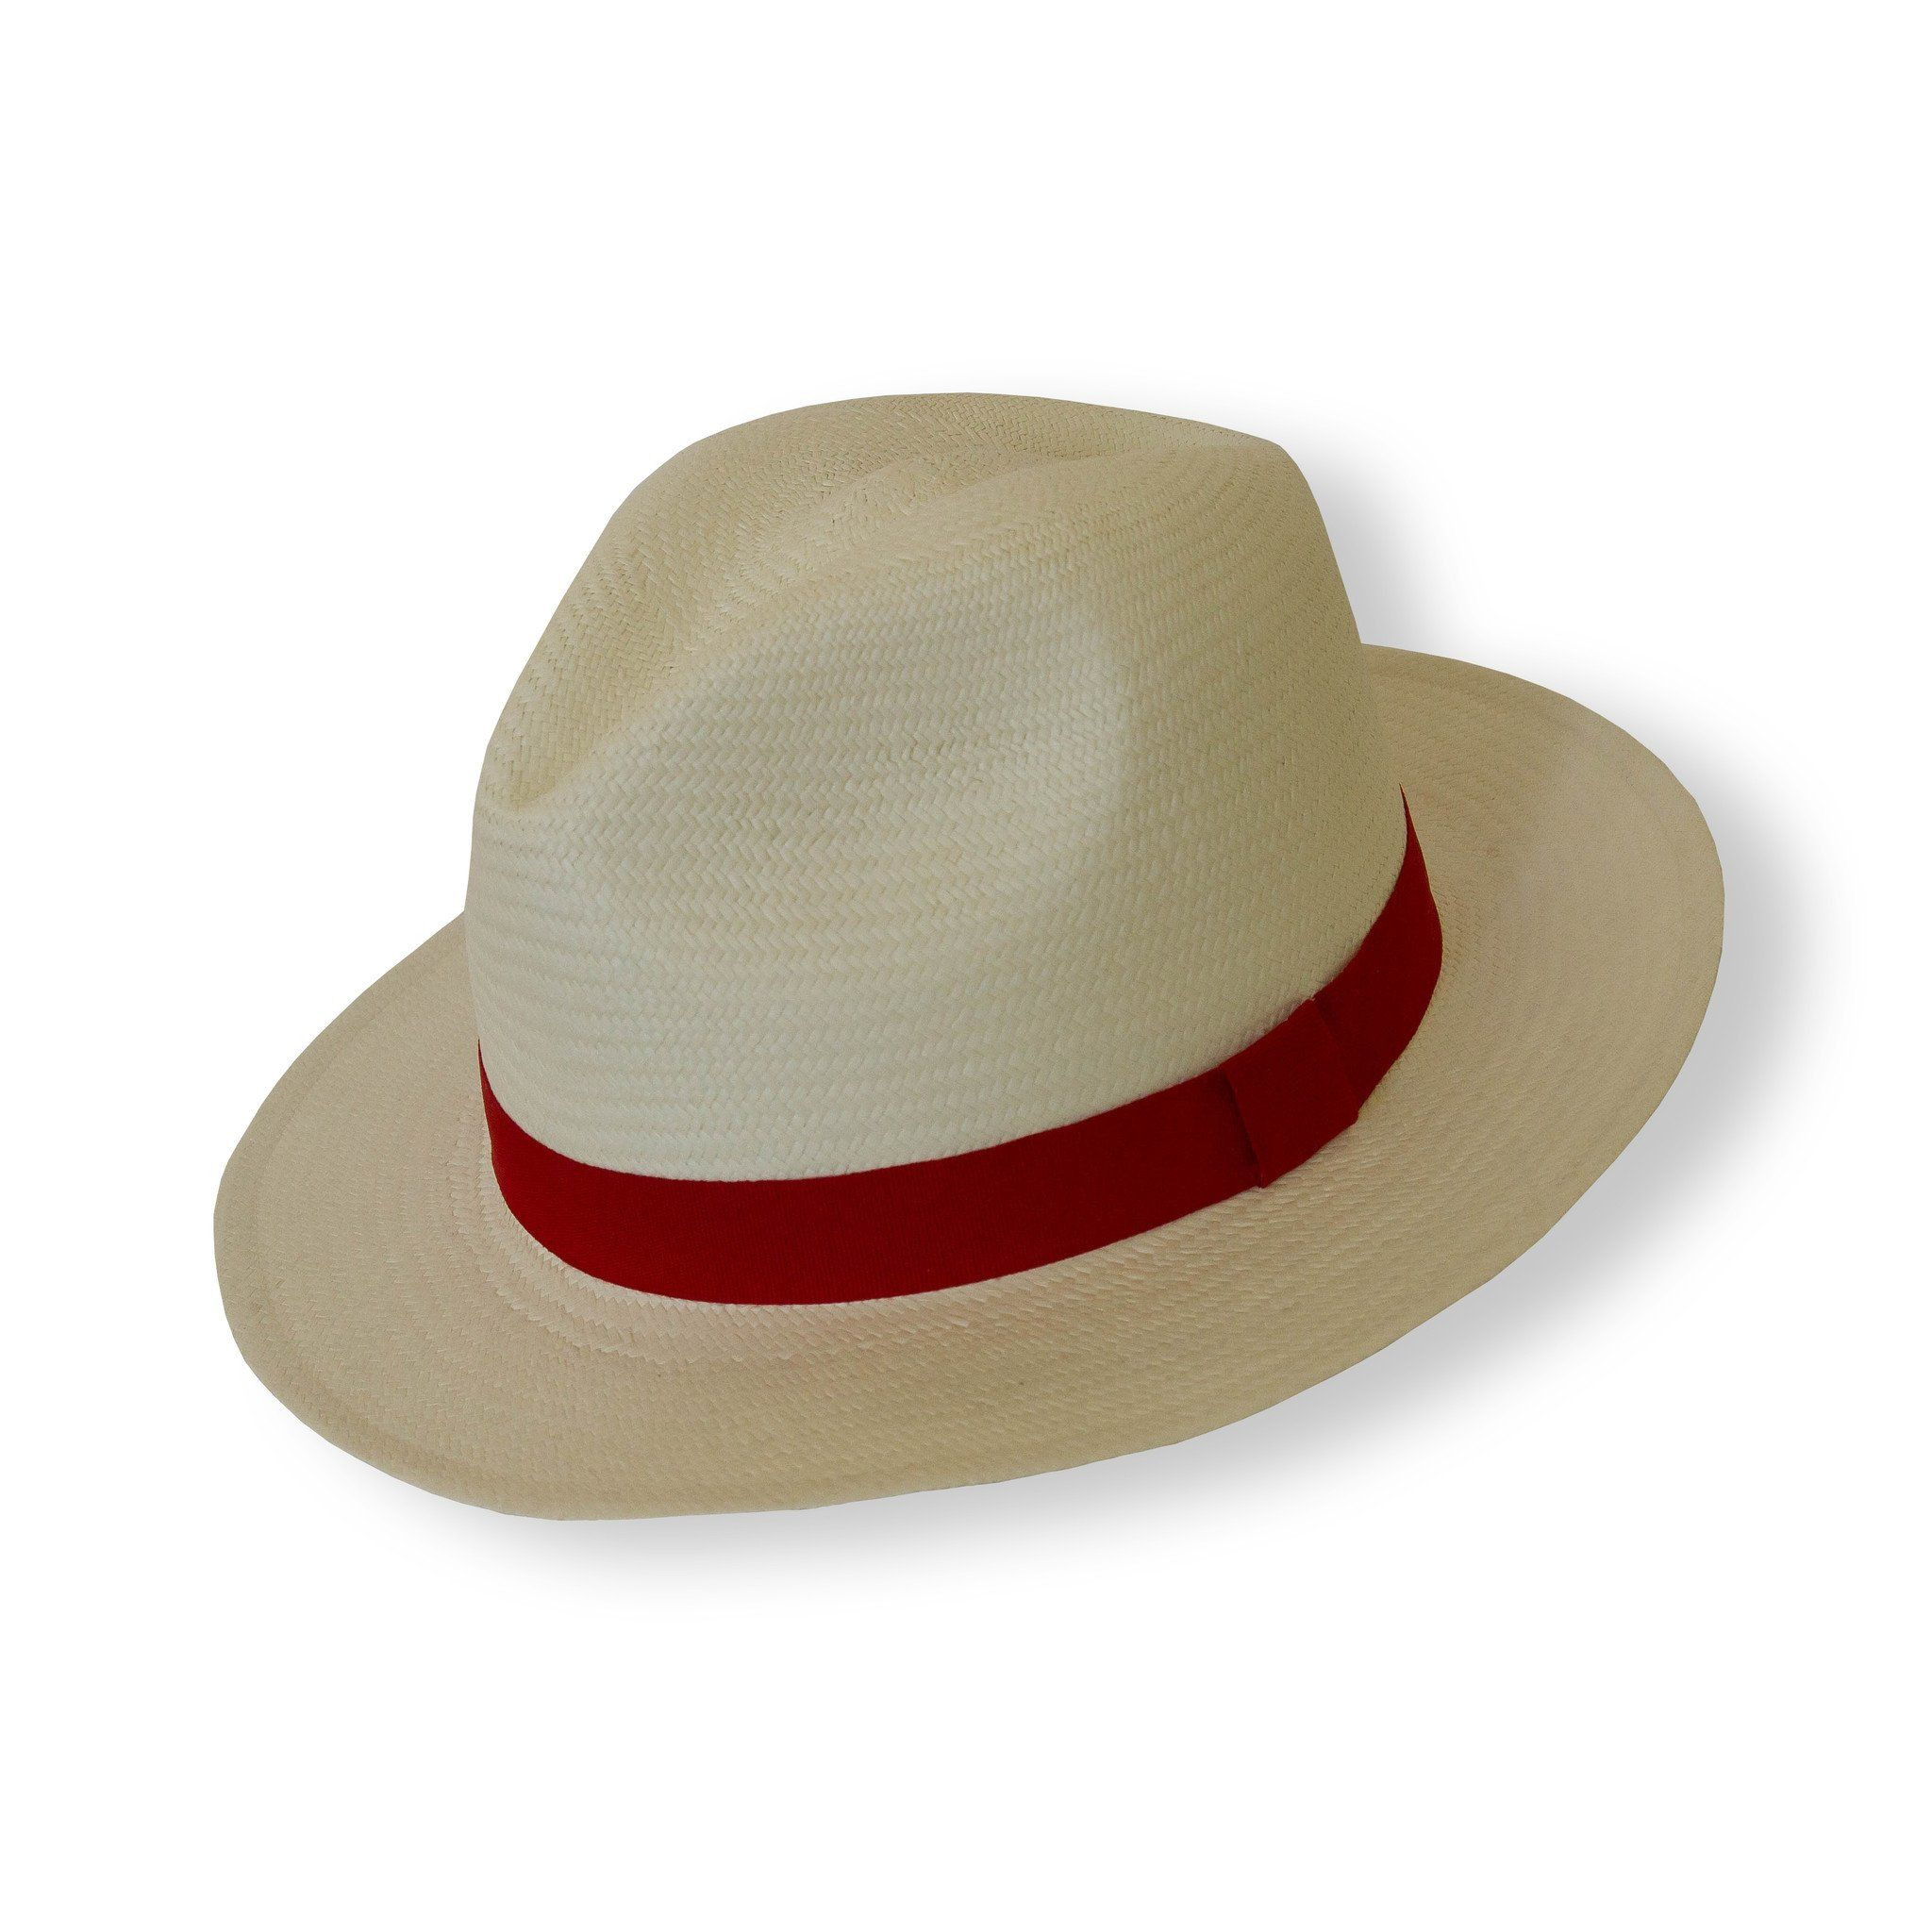 fd269dbe8 Boys Fedora Panama Hat - Red Band | Accessorize | Hats, Red band ...